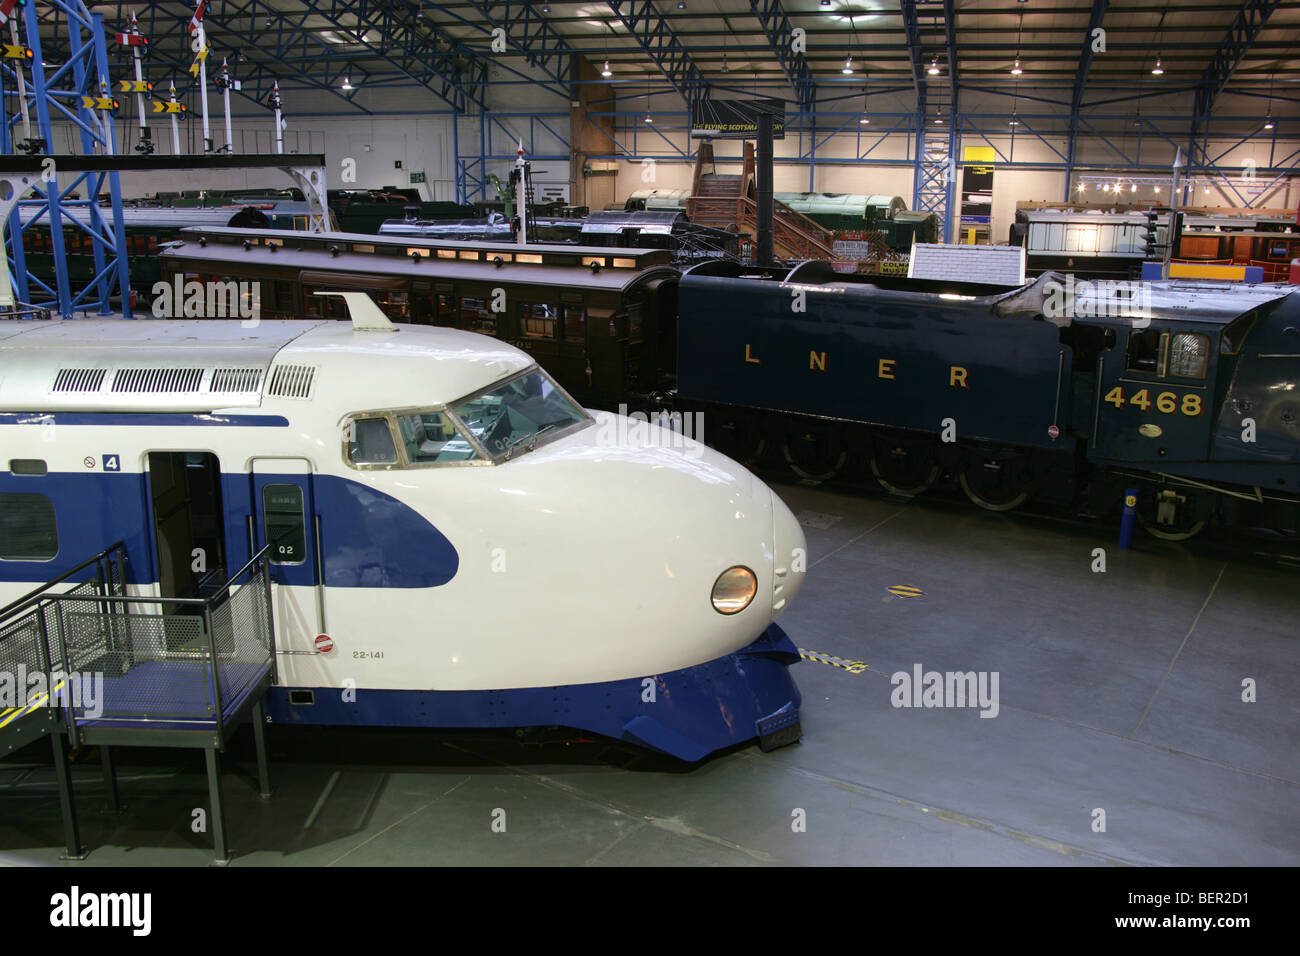 The Shinkansen Bullet Train with the Mallard locomotive in the background at the National Railway Museum's Great - Stock Image